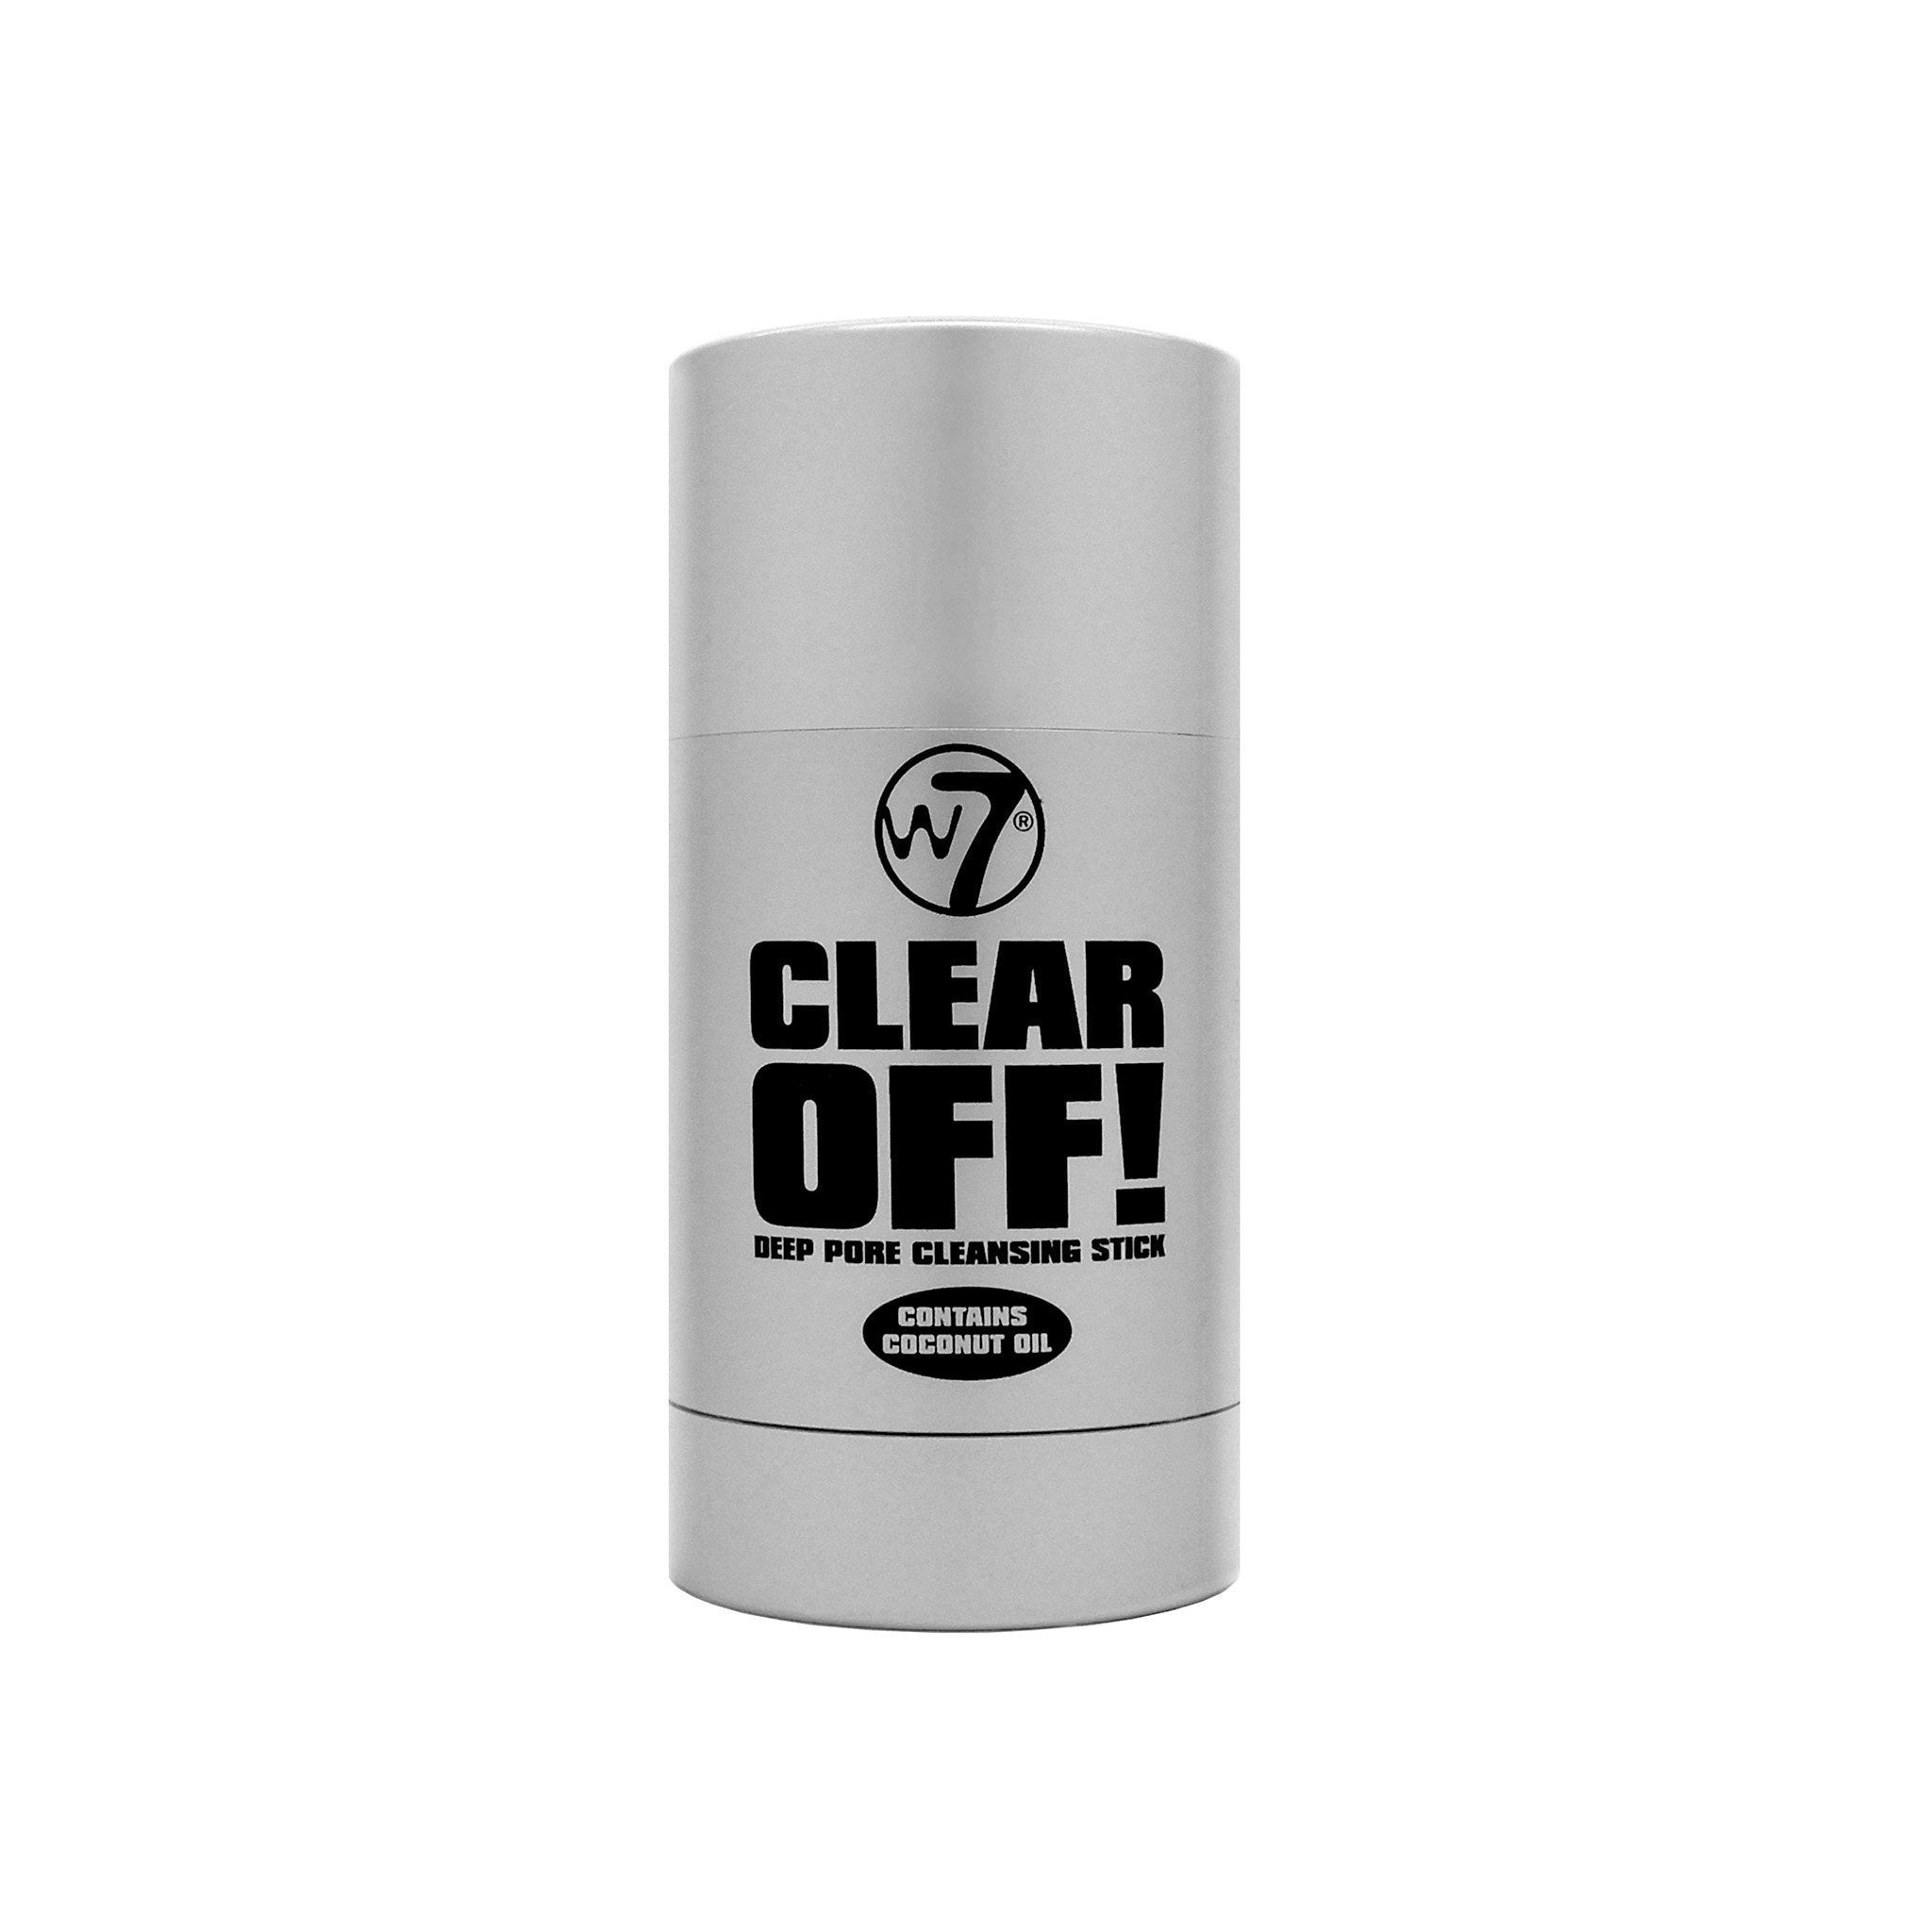 W7 Clear Off! Deep Pore Cleansing Stick